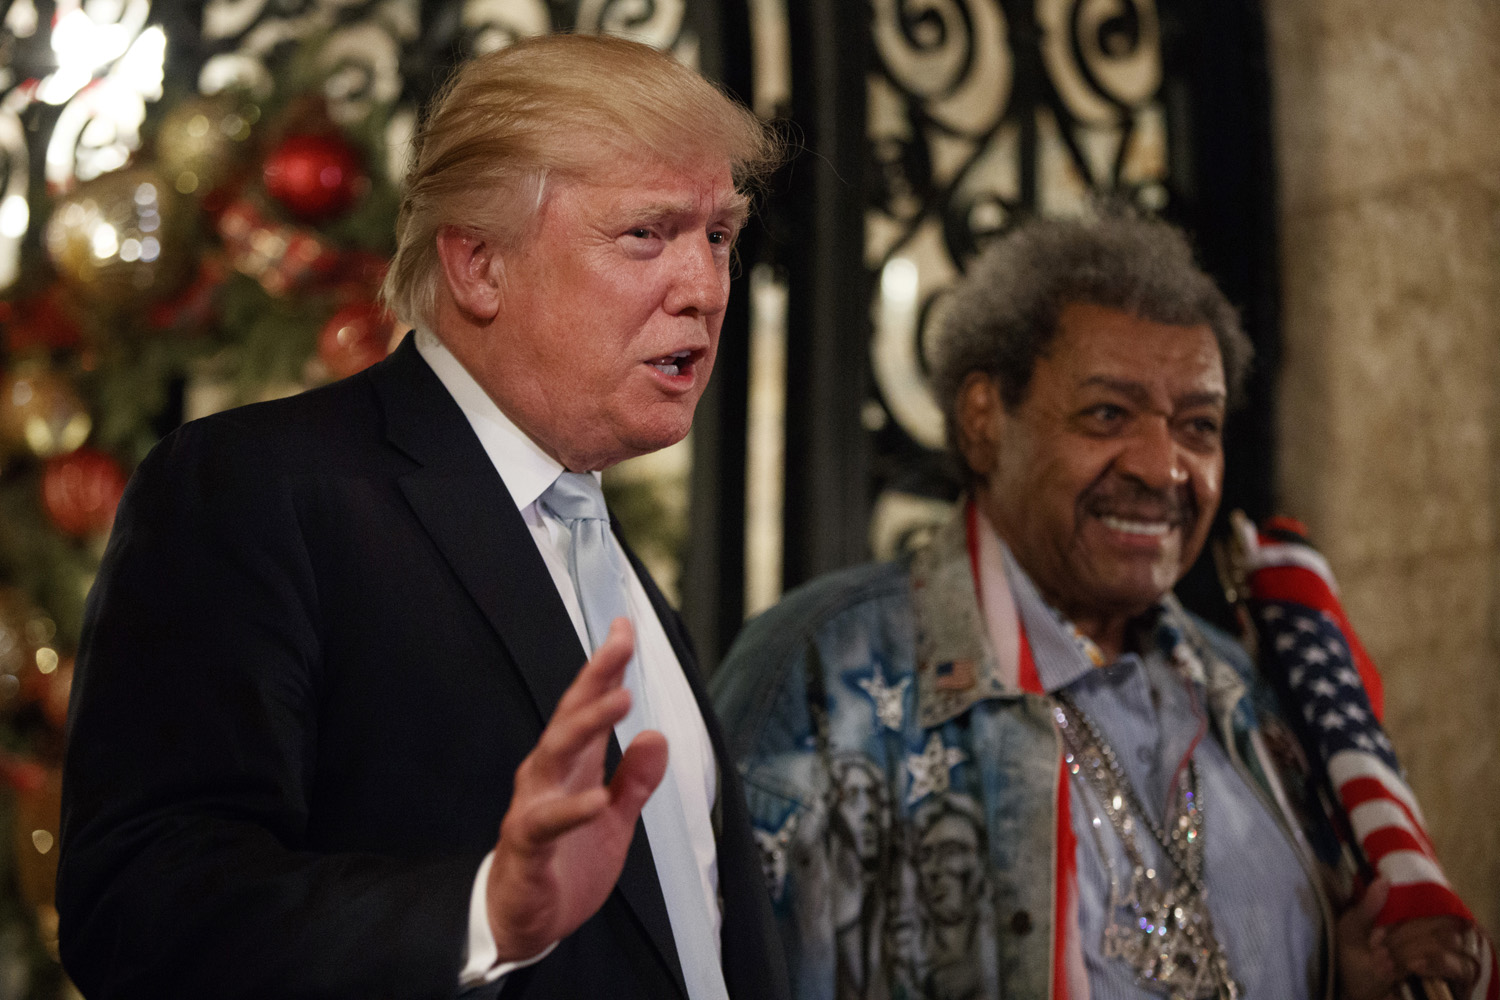 President-elect Donald Trump, left, stands with boxing promoter Don King as he speaks to reporters at Mar-a-Lago, Wednesday, Dec. 28, 2016, in Palm Beach, Fla. (Evan Vucci/AP)